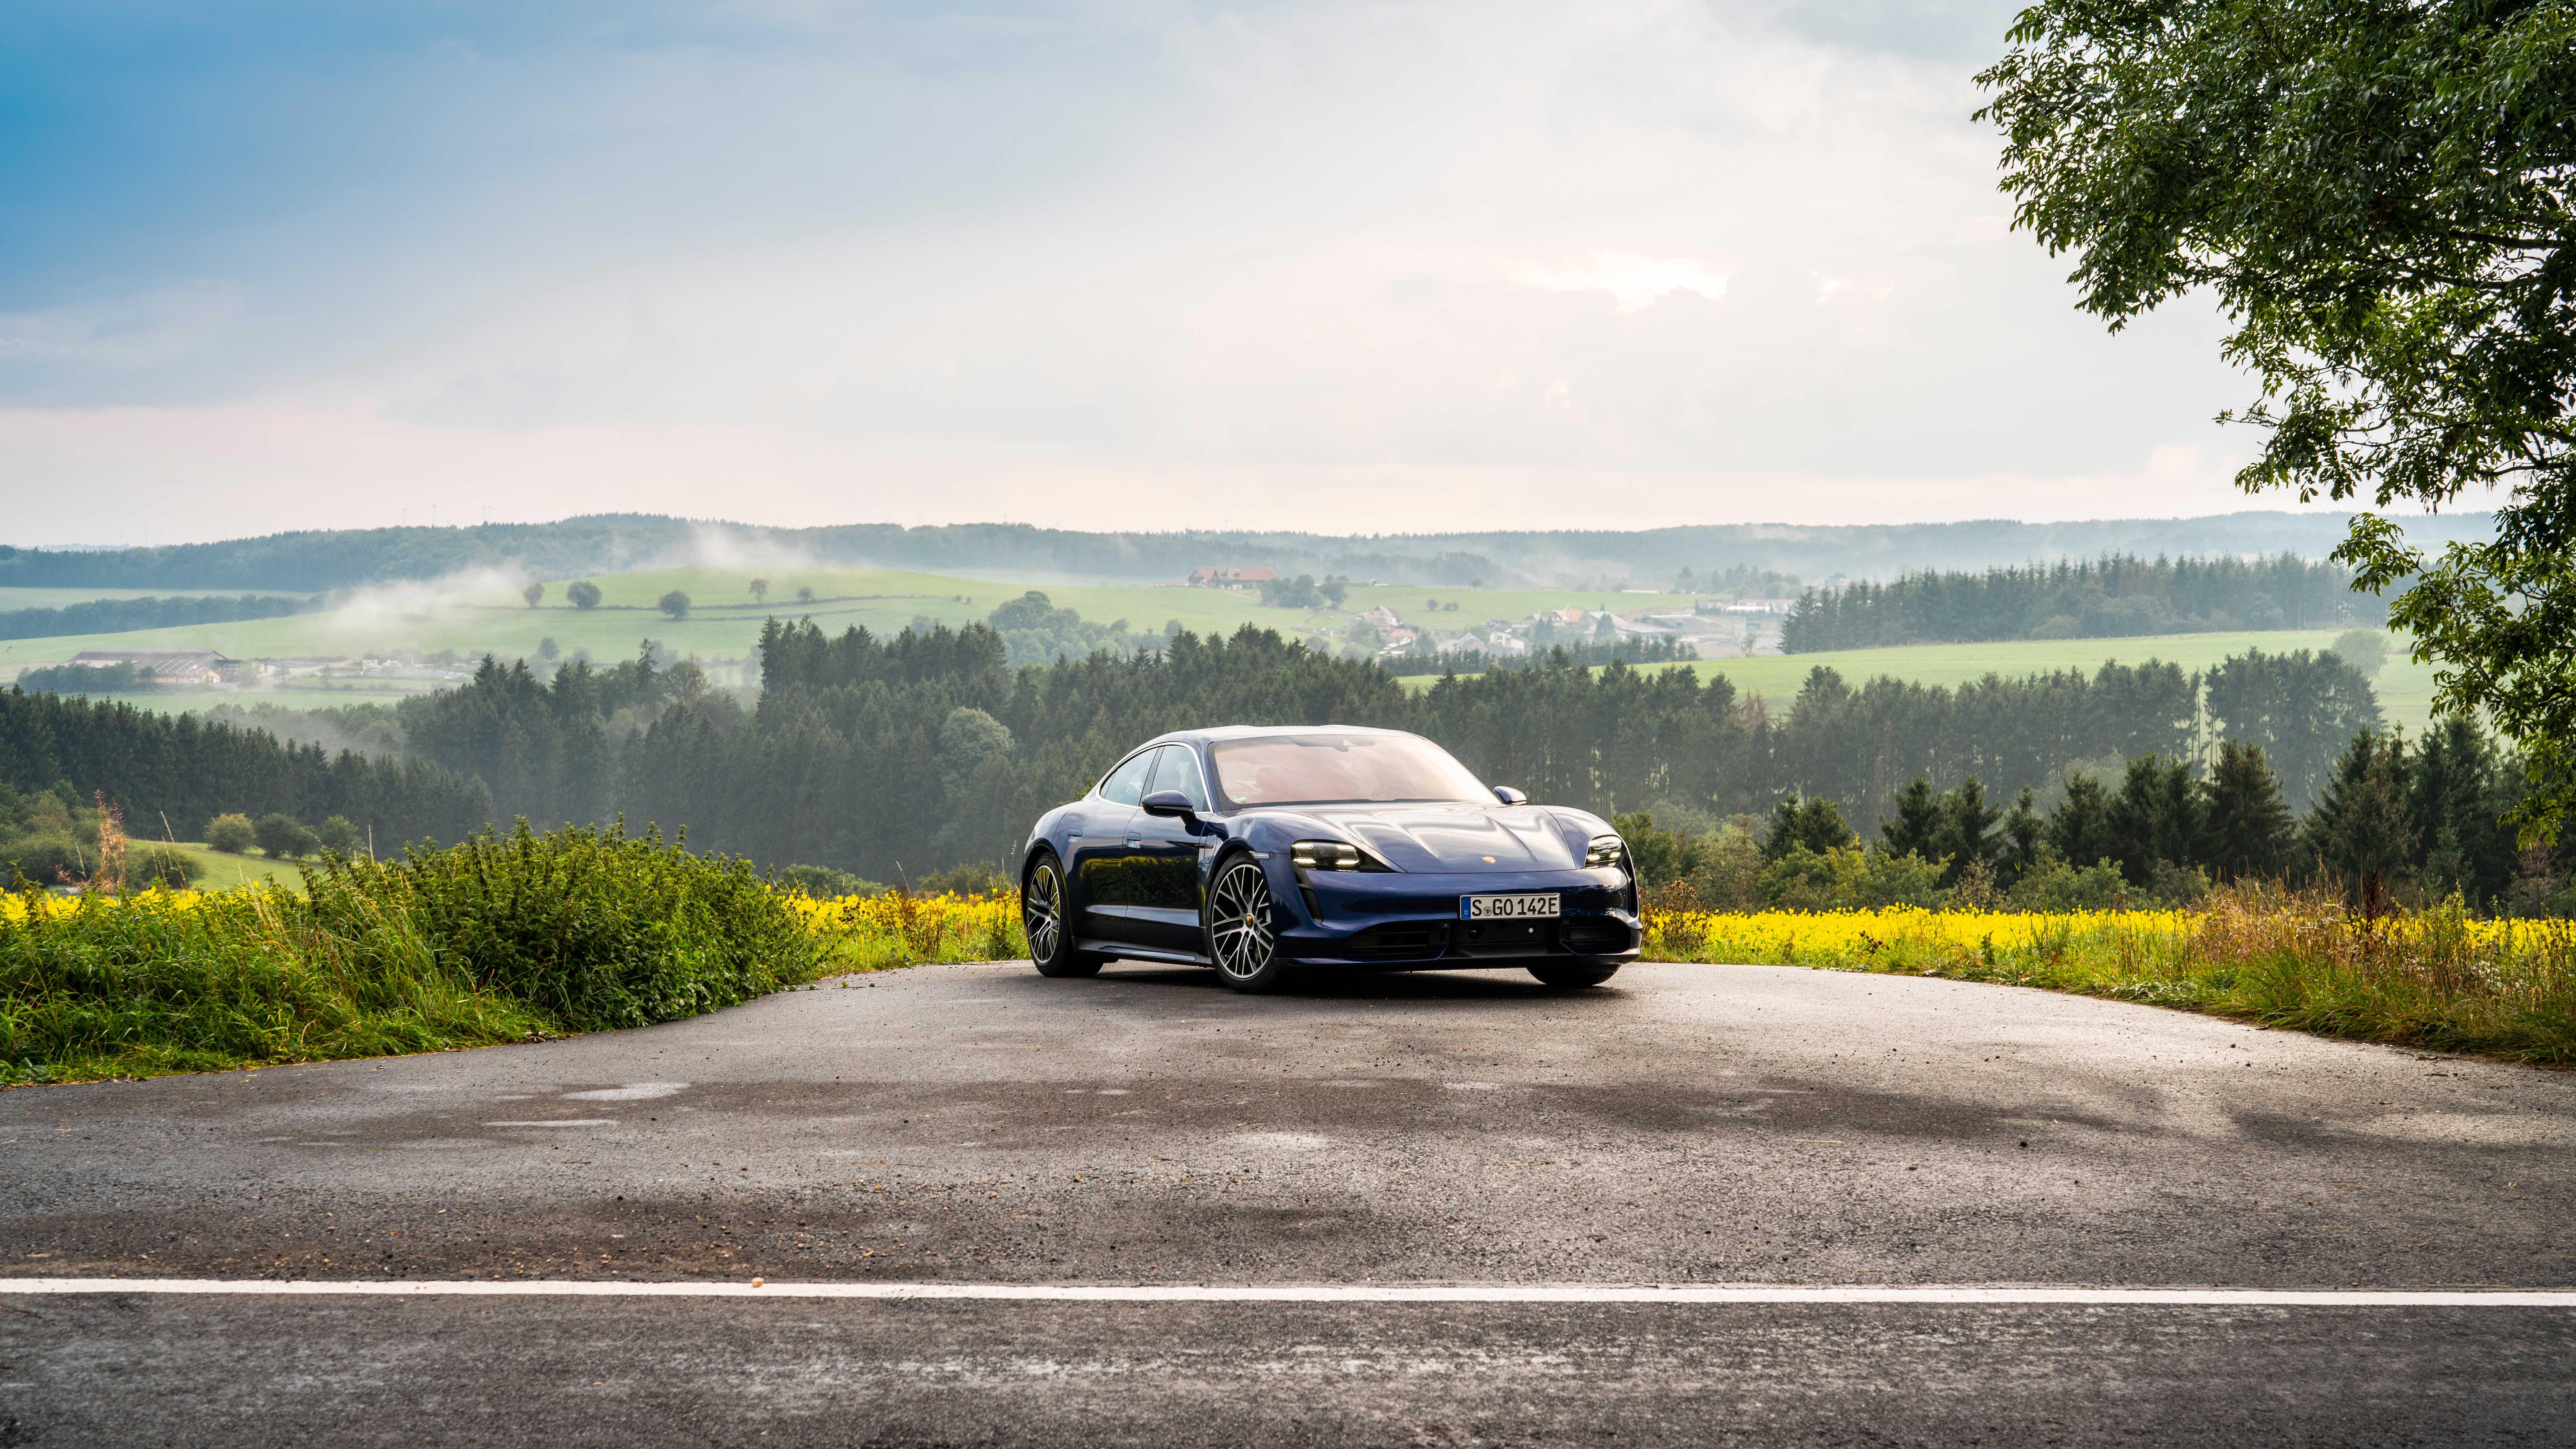 The Porsche Taycan Turbo S Might Have Horrible Range But Hot Damn Is It Fast